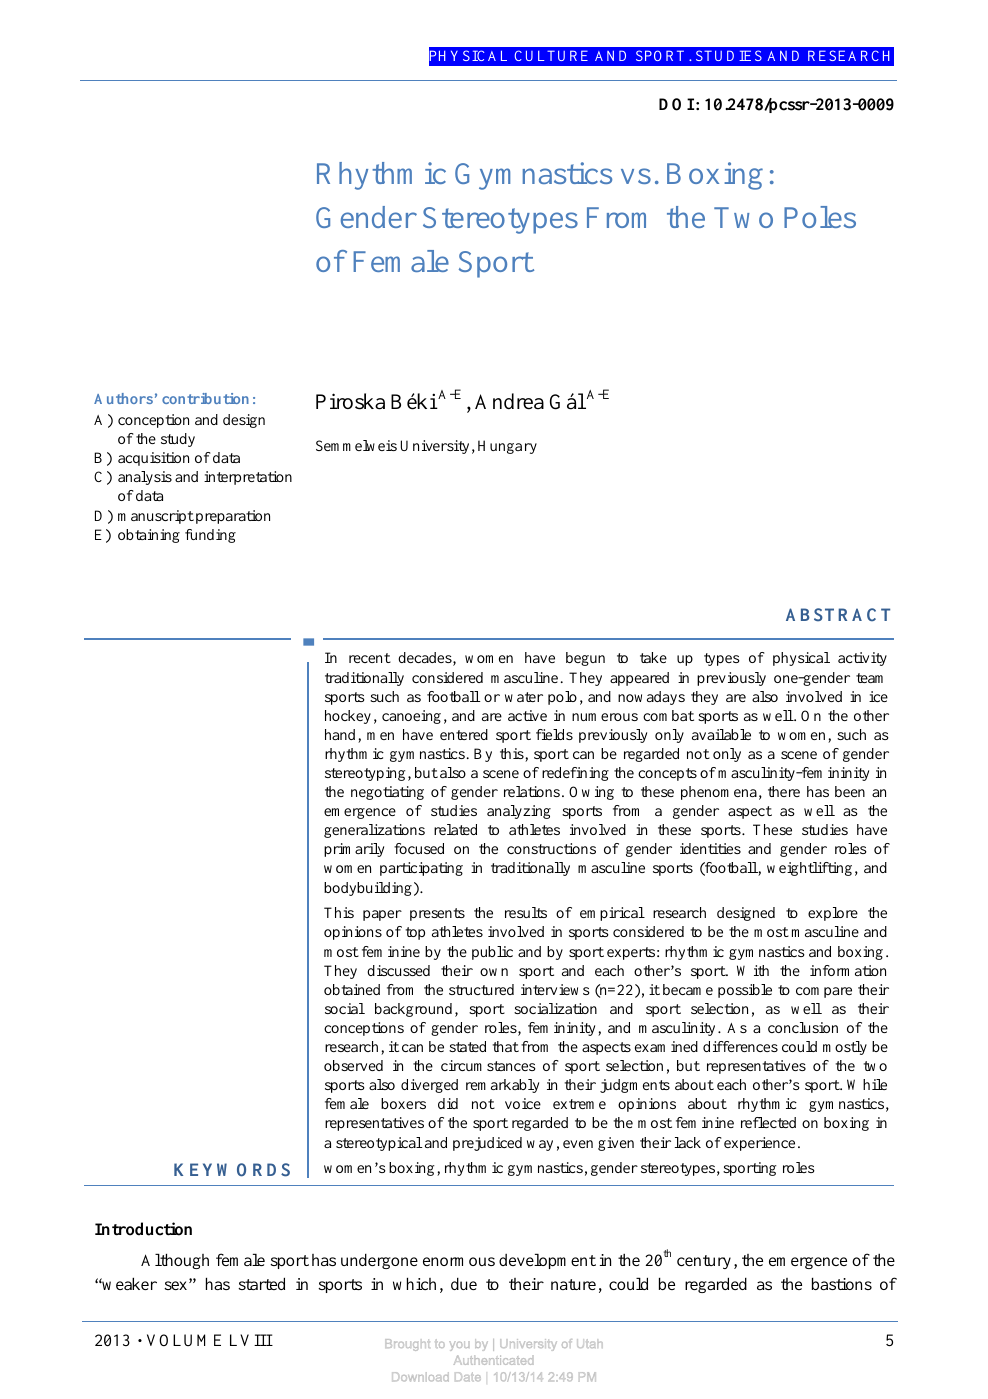 gender differences in sports